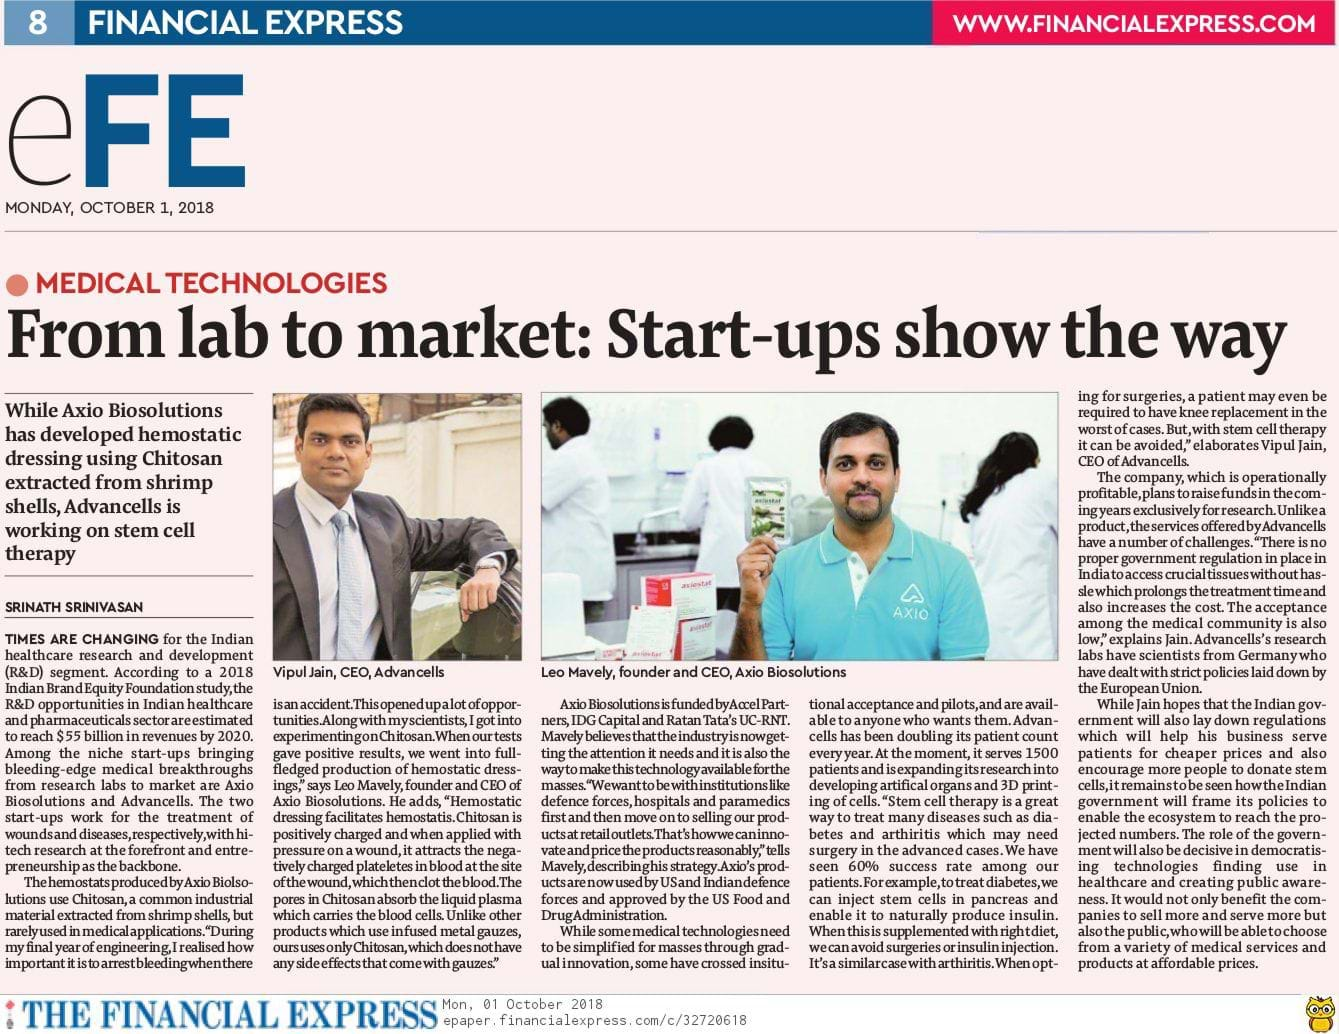 From lab to market – how startups are changing the game